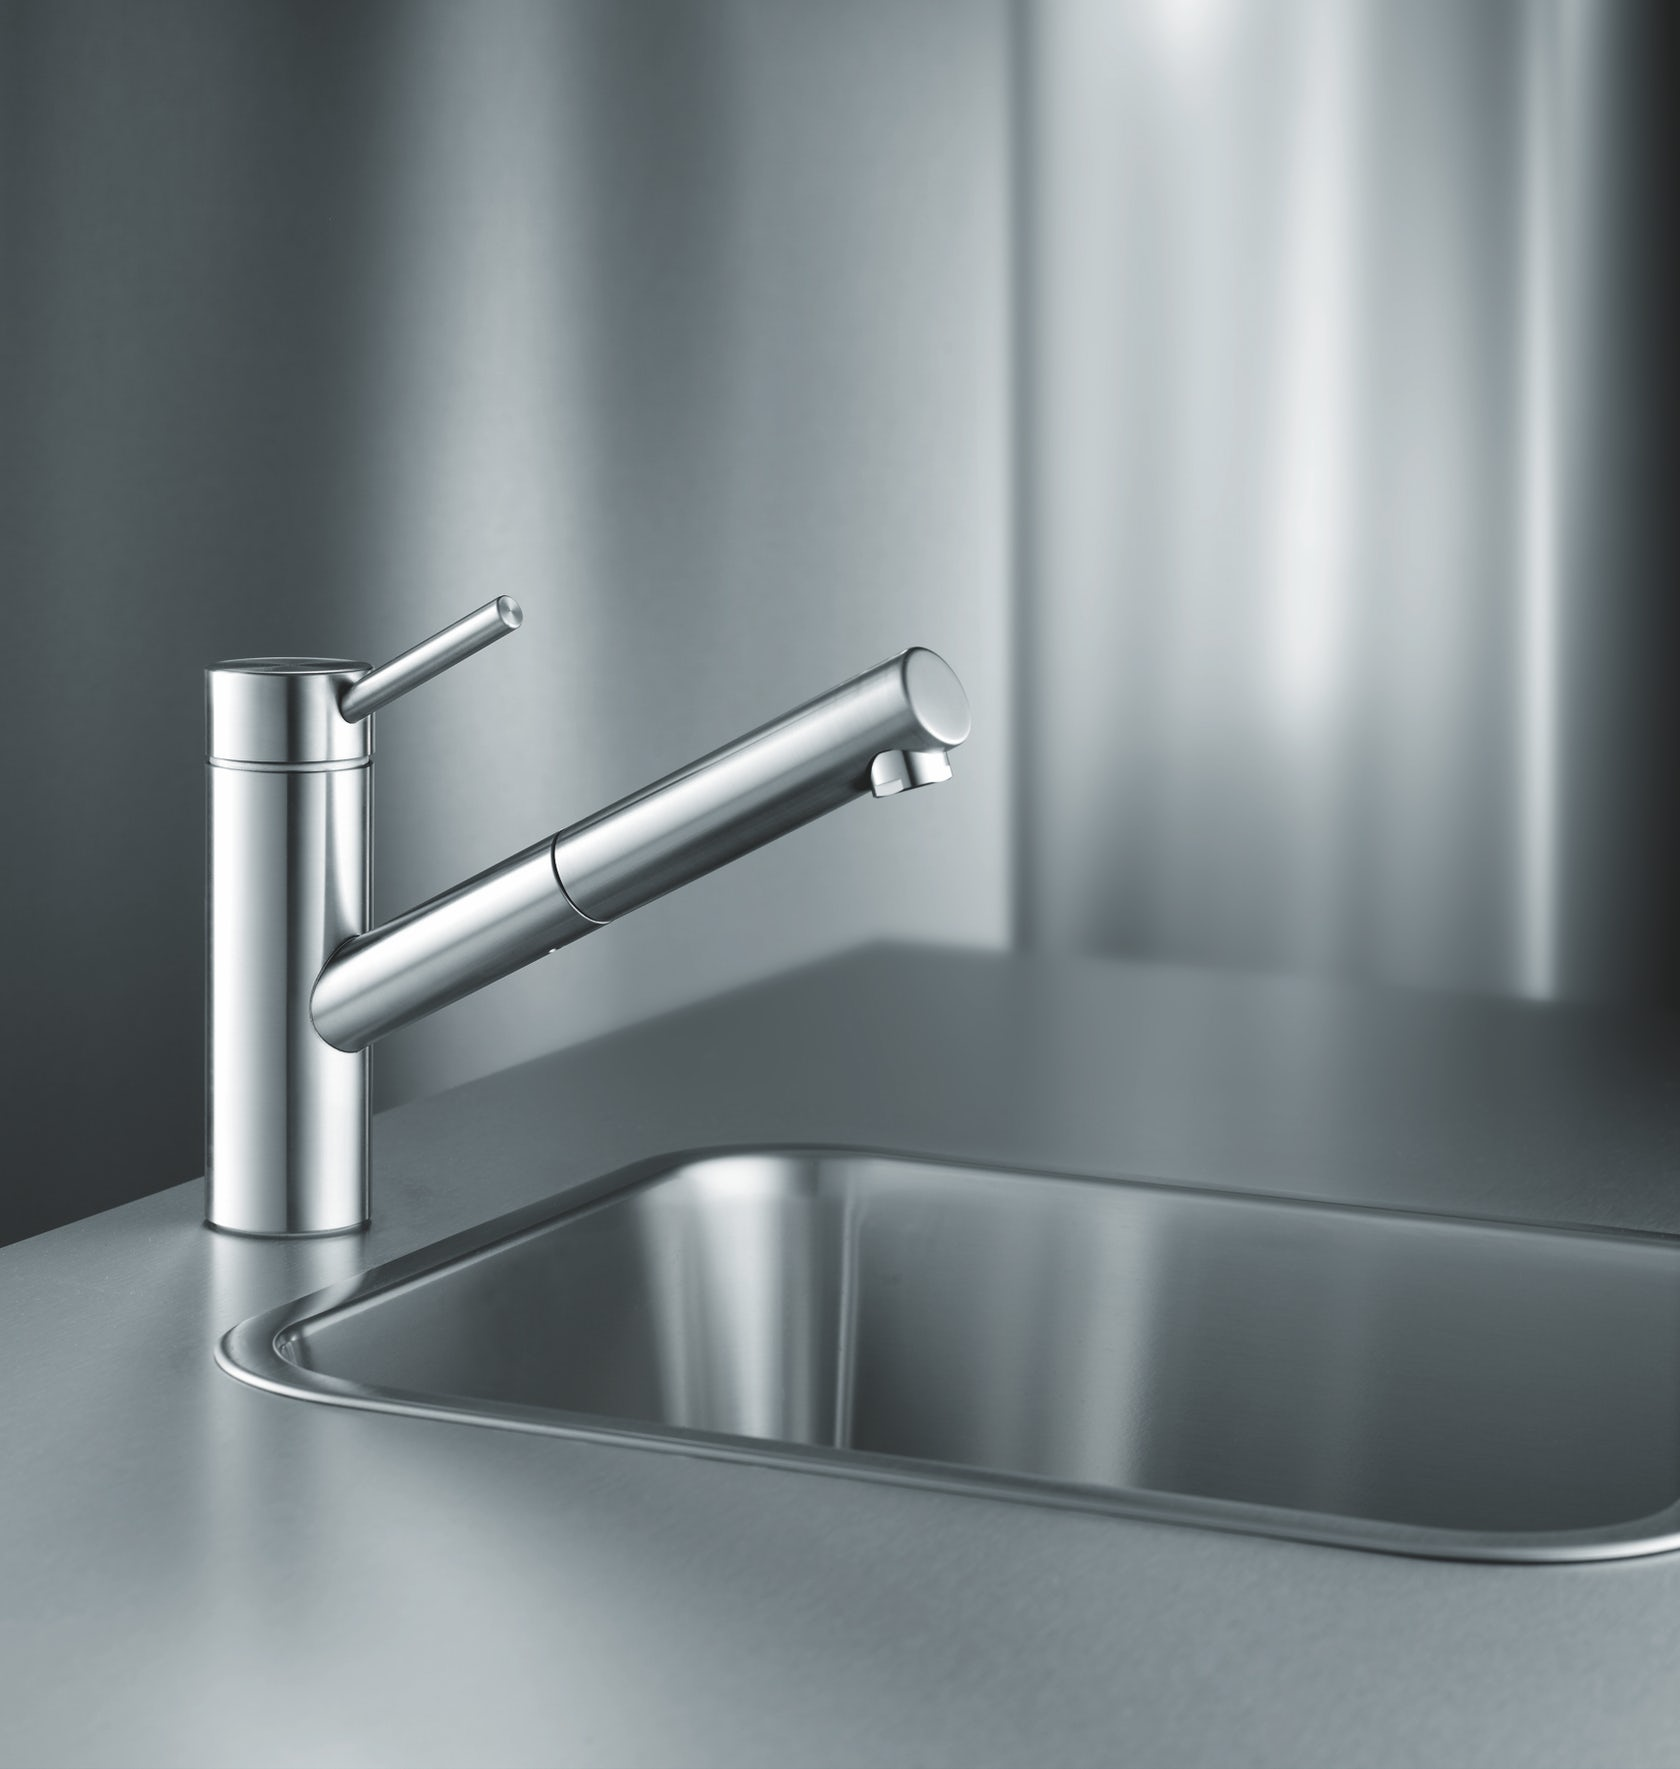 Kwc Suprimo Kitchen Faucet: Kwc suprimo kitchen faucet stainless steel.